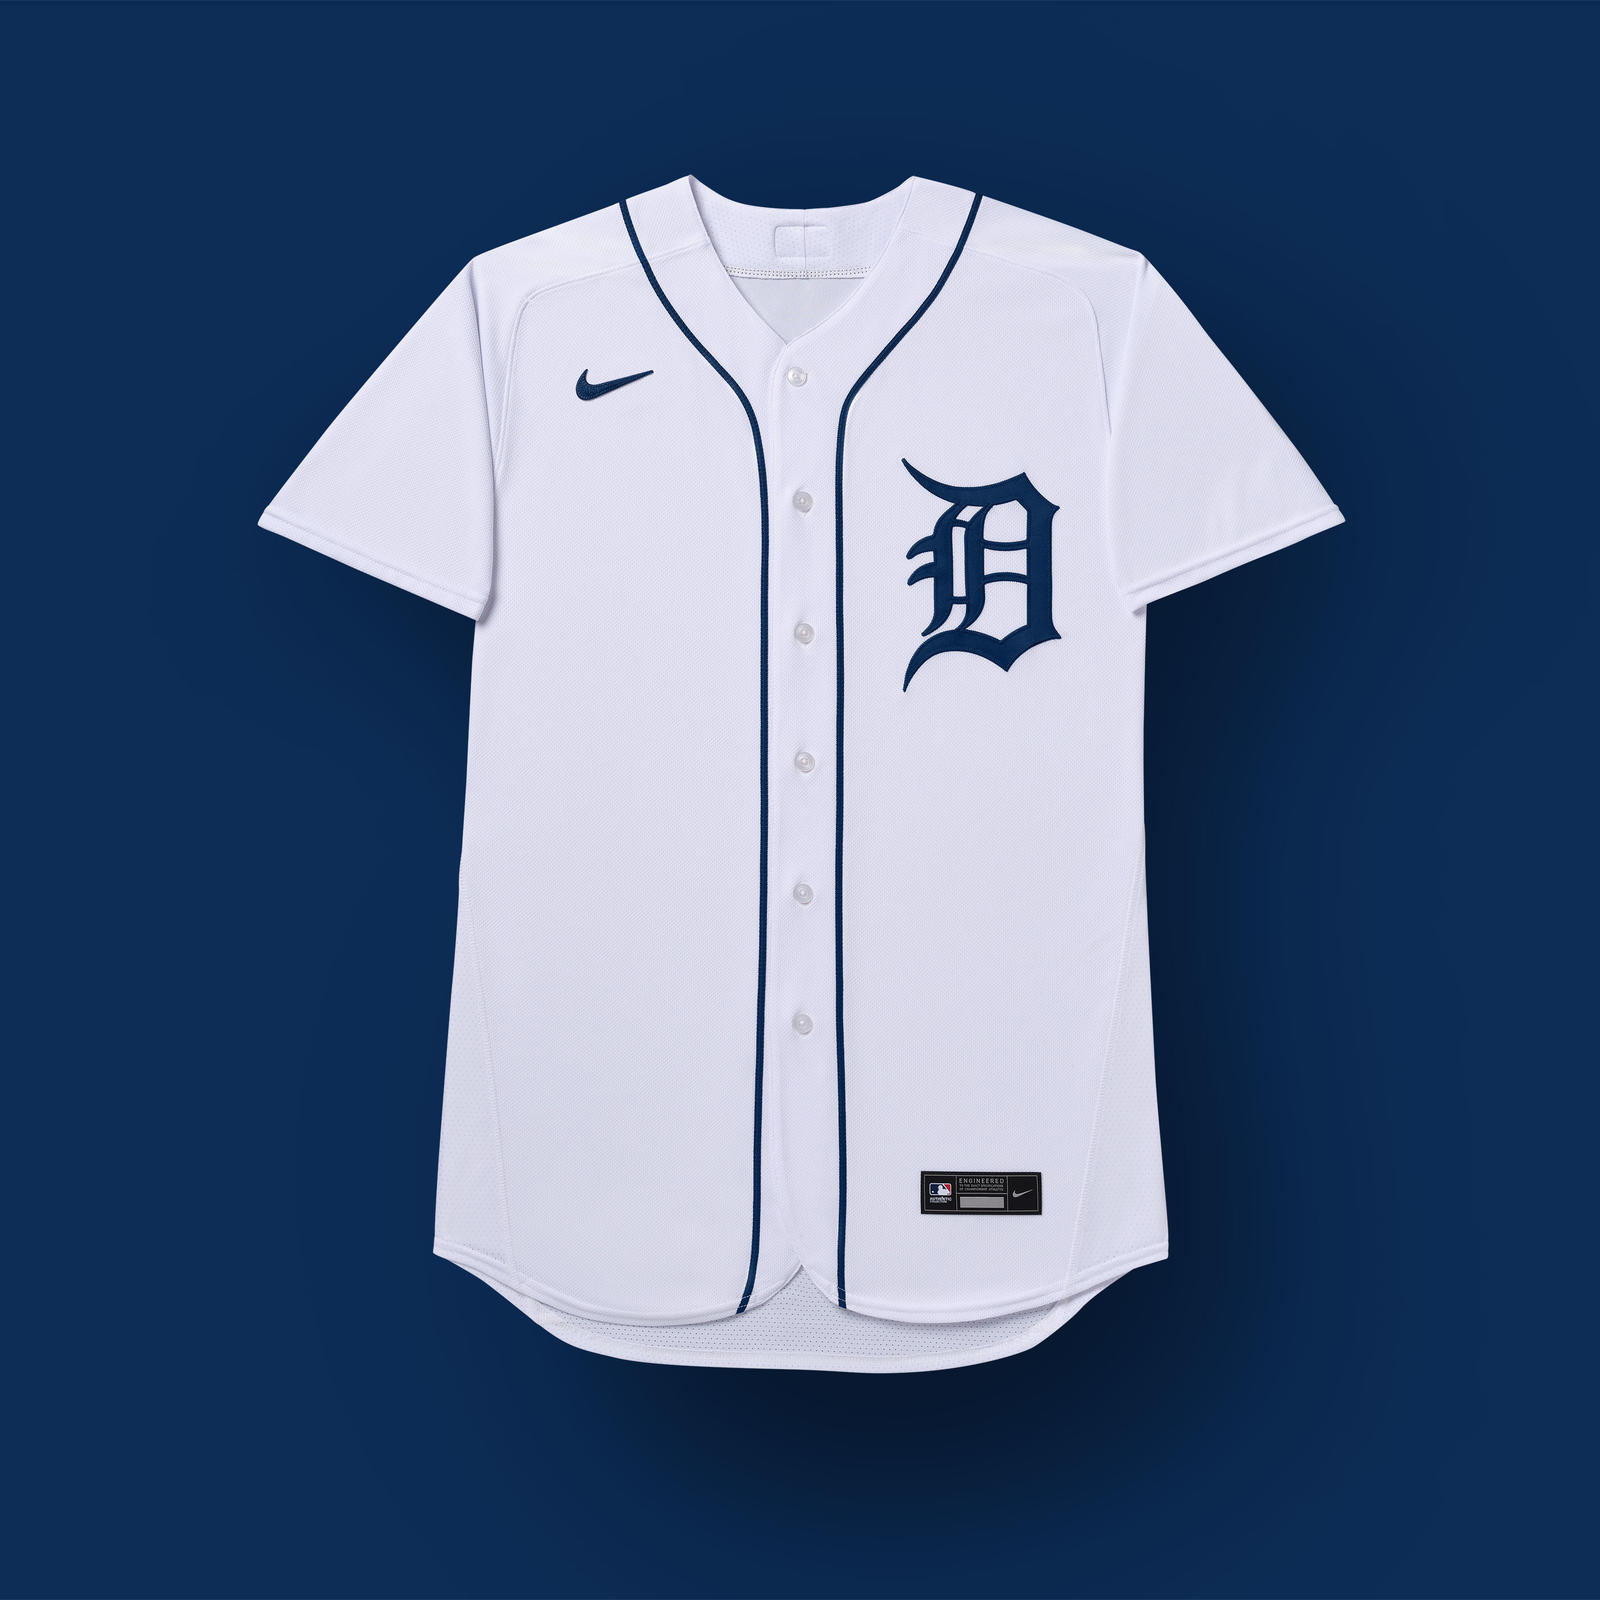 Nike x Major League Baseball Uniforms 2020 Official Images 28